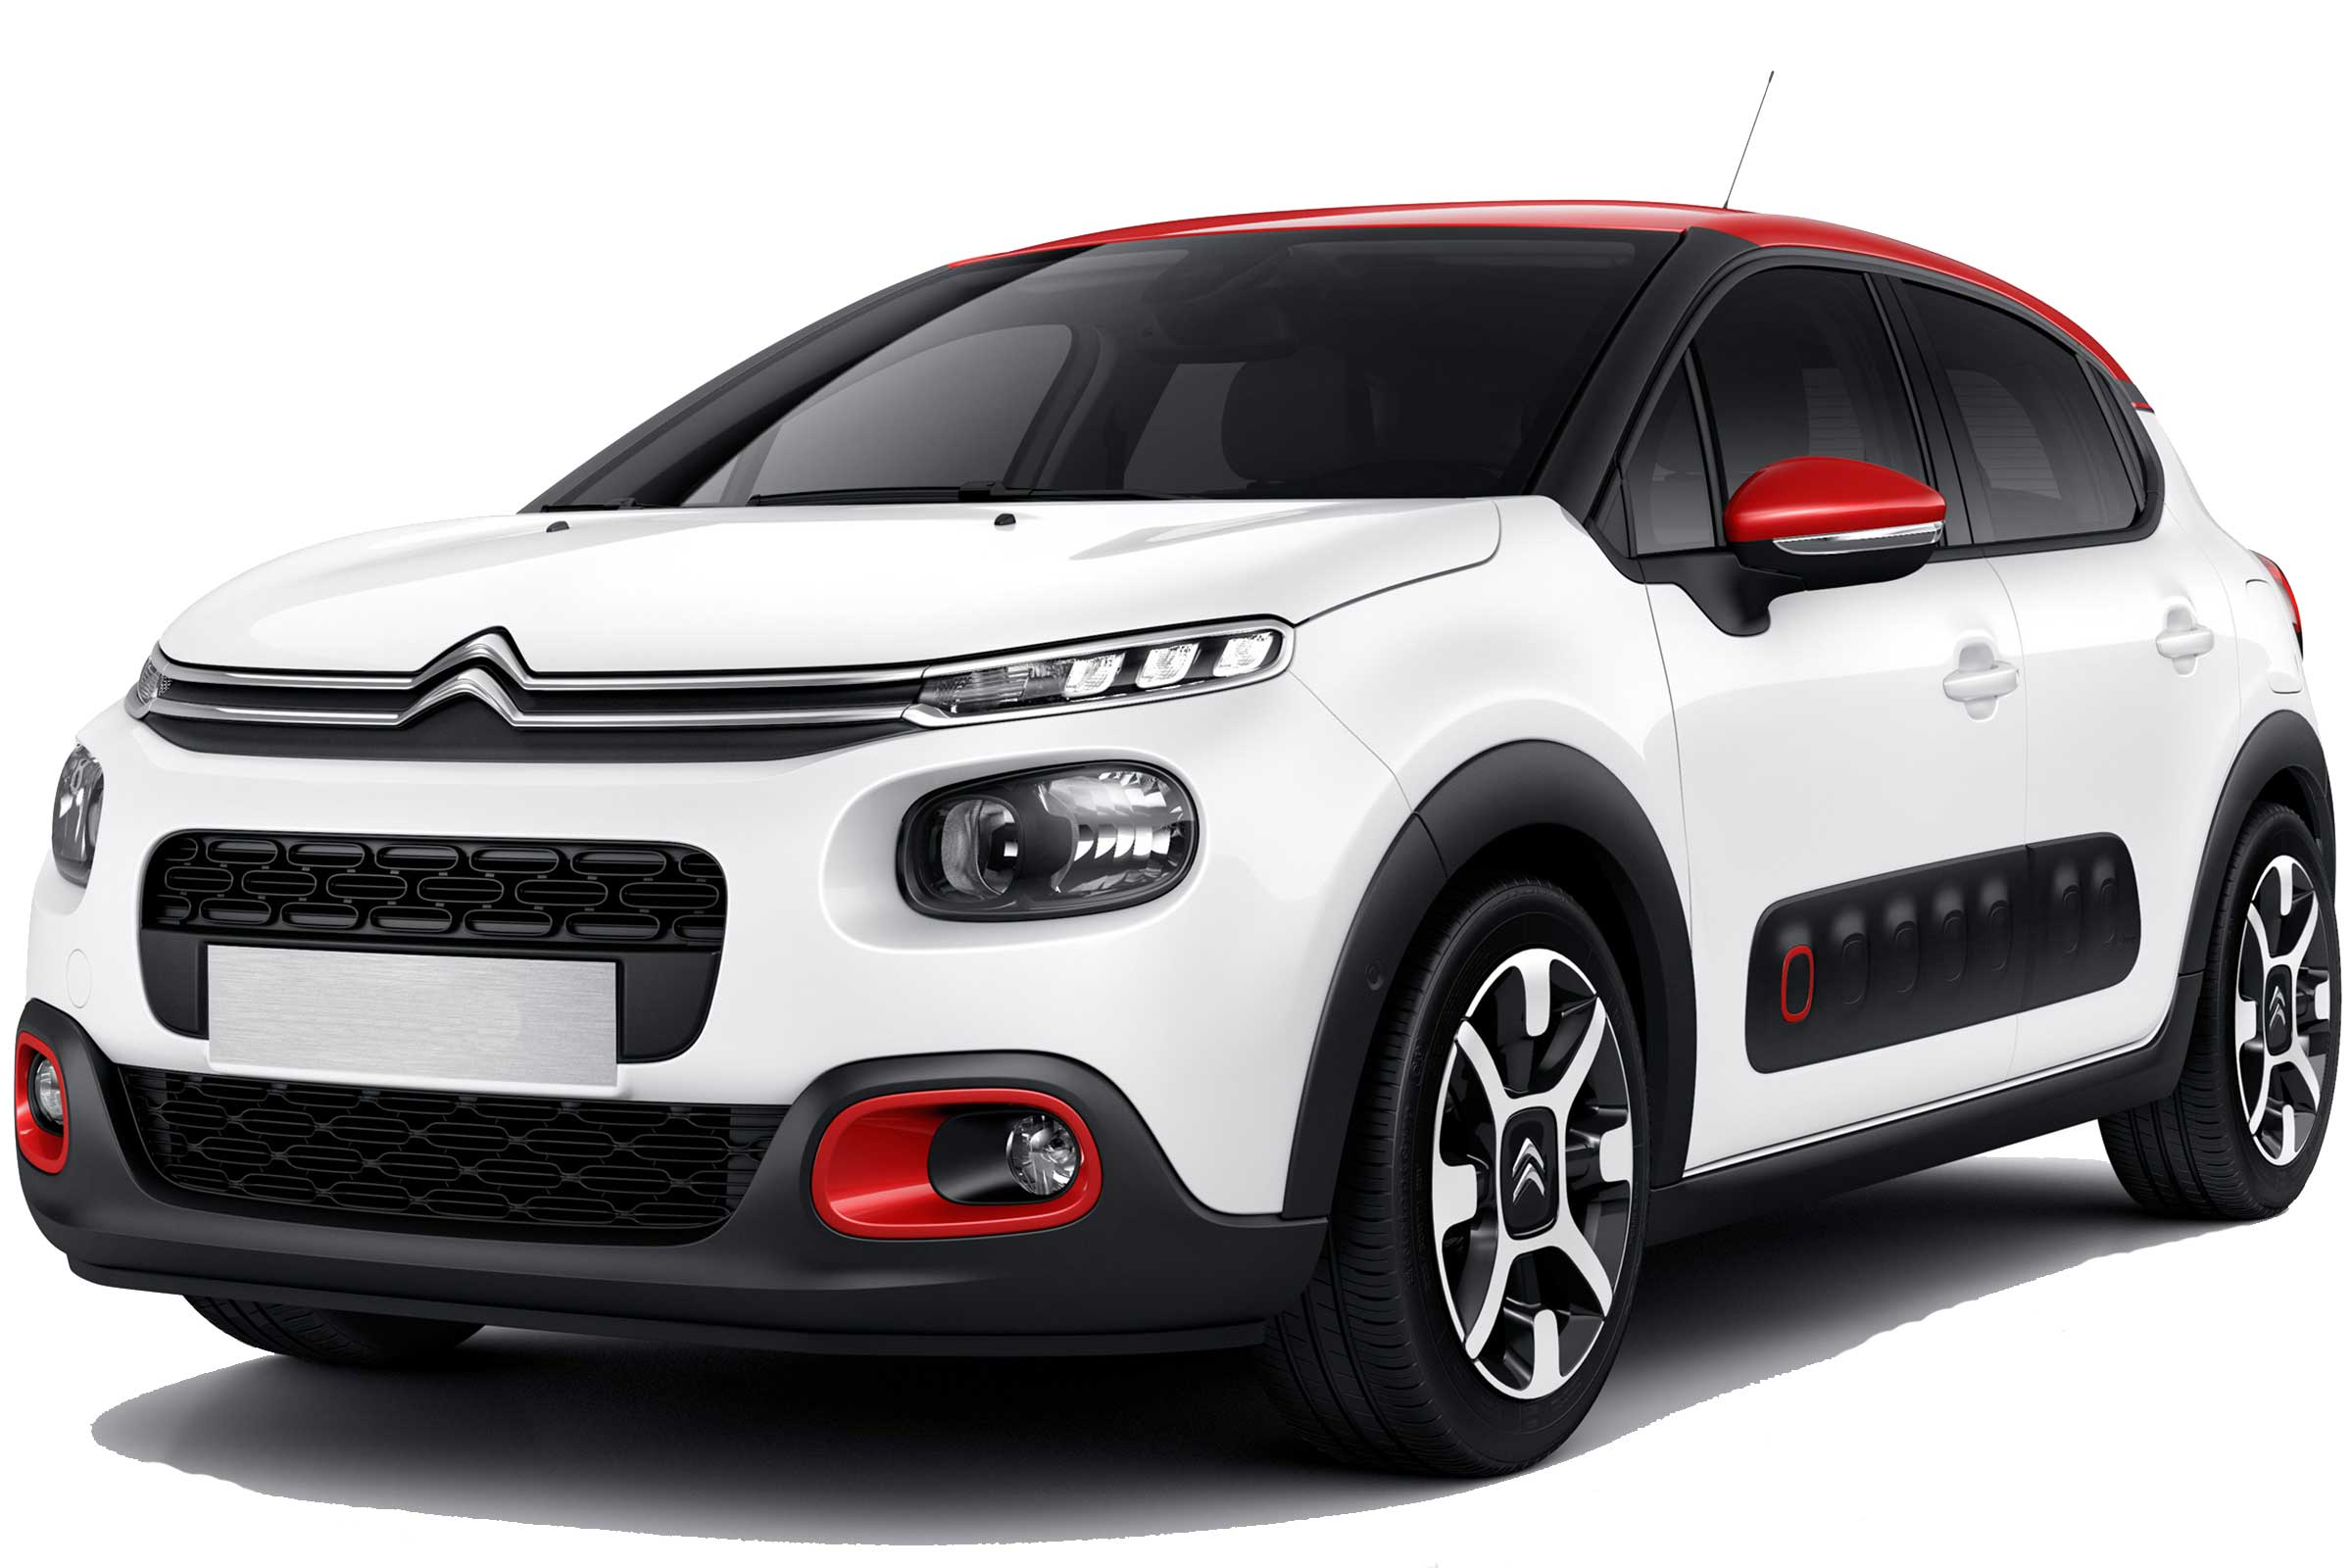 citroen contract hire uk deals c3 hatchback puretech 1 2 82 flair 5dr petrol new vehicle. Black Bedroom Furniture Sets. Home Design Ideas